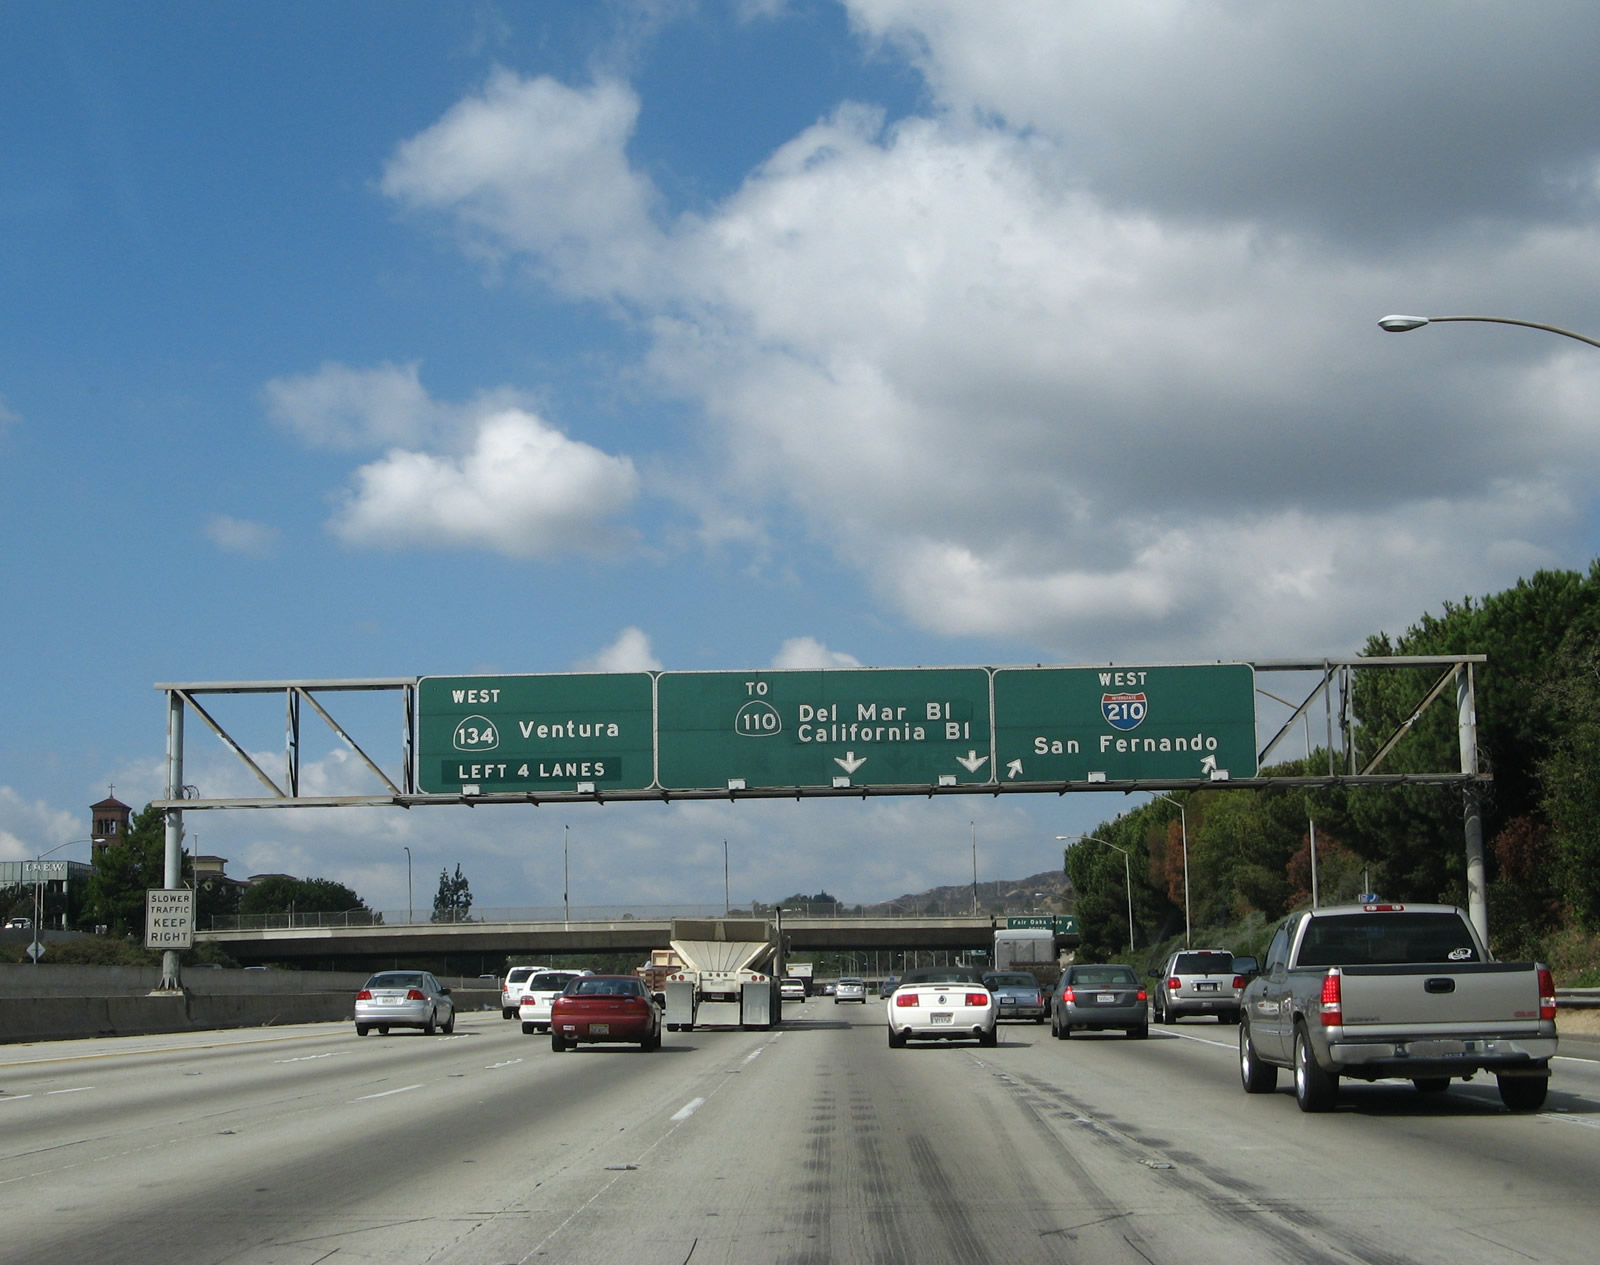 California 134 Ventura Freeway Begins Its Westbound Journey Upon Splitting From Interstate 210 Foothill Freeway At The M Ive Interchange Between